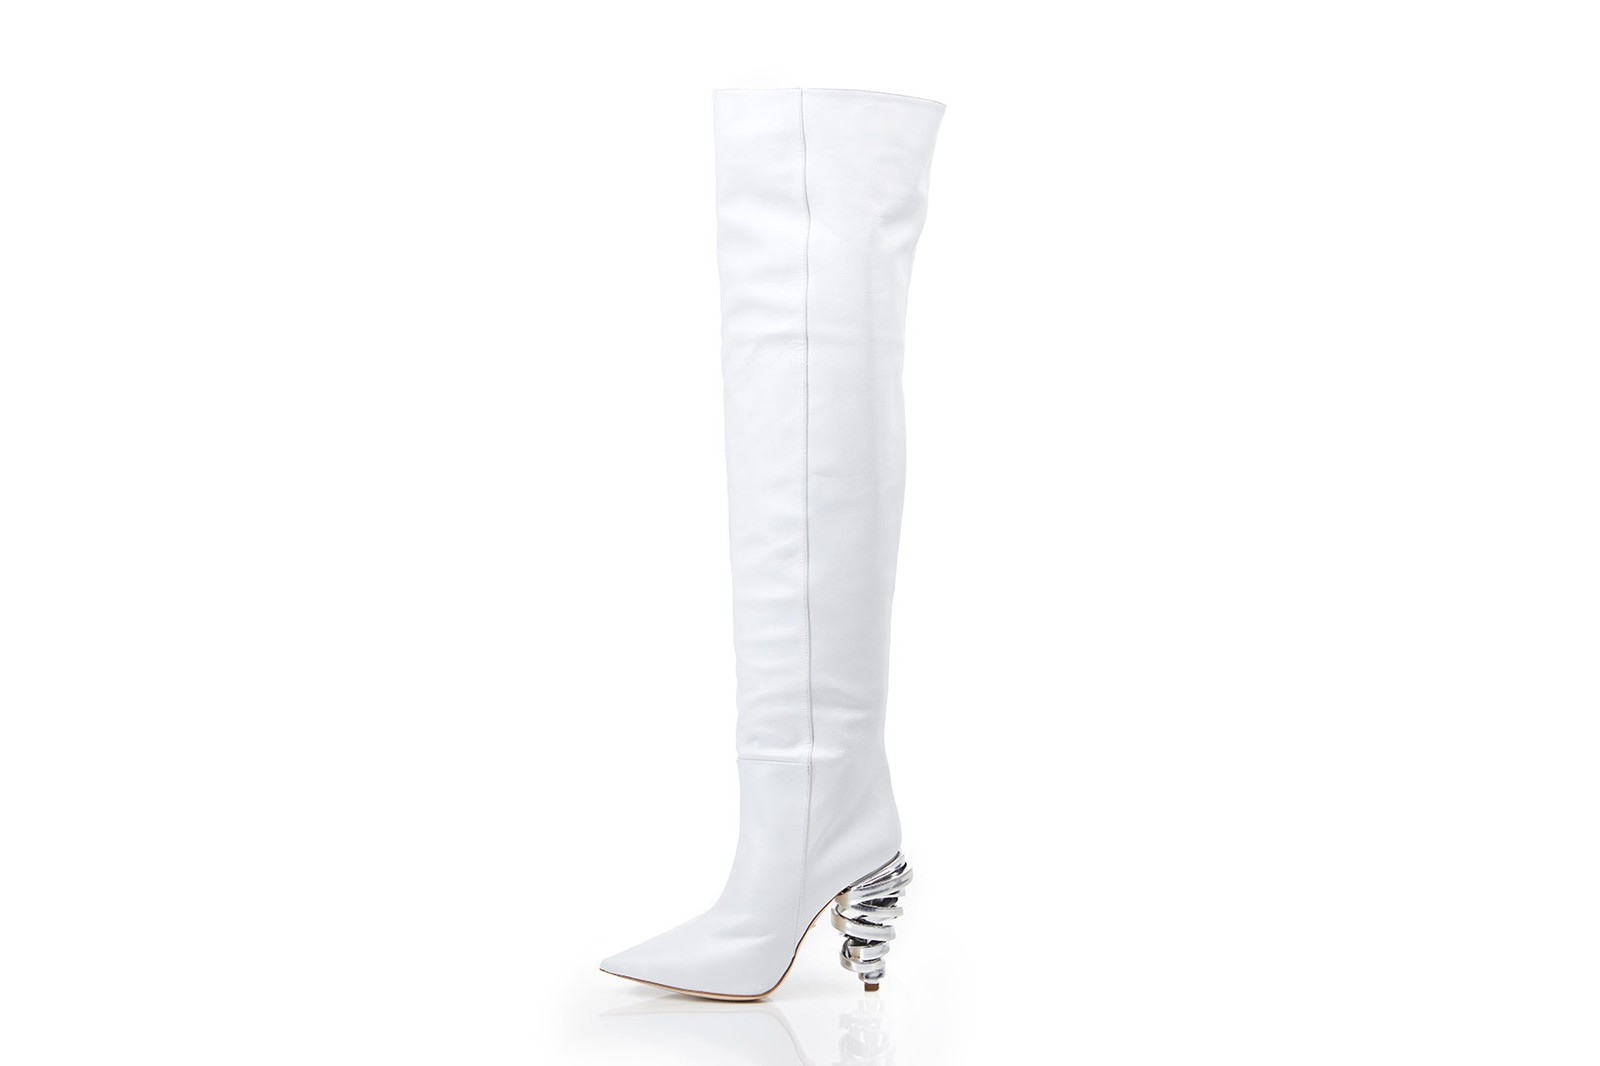 keeyahri zerina akers heels boots shoes collaboration white black